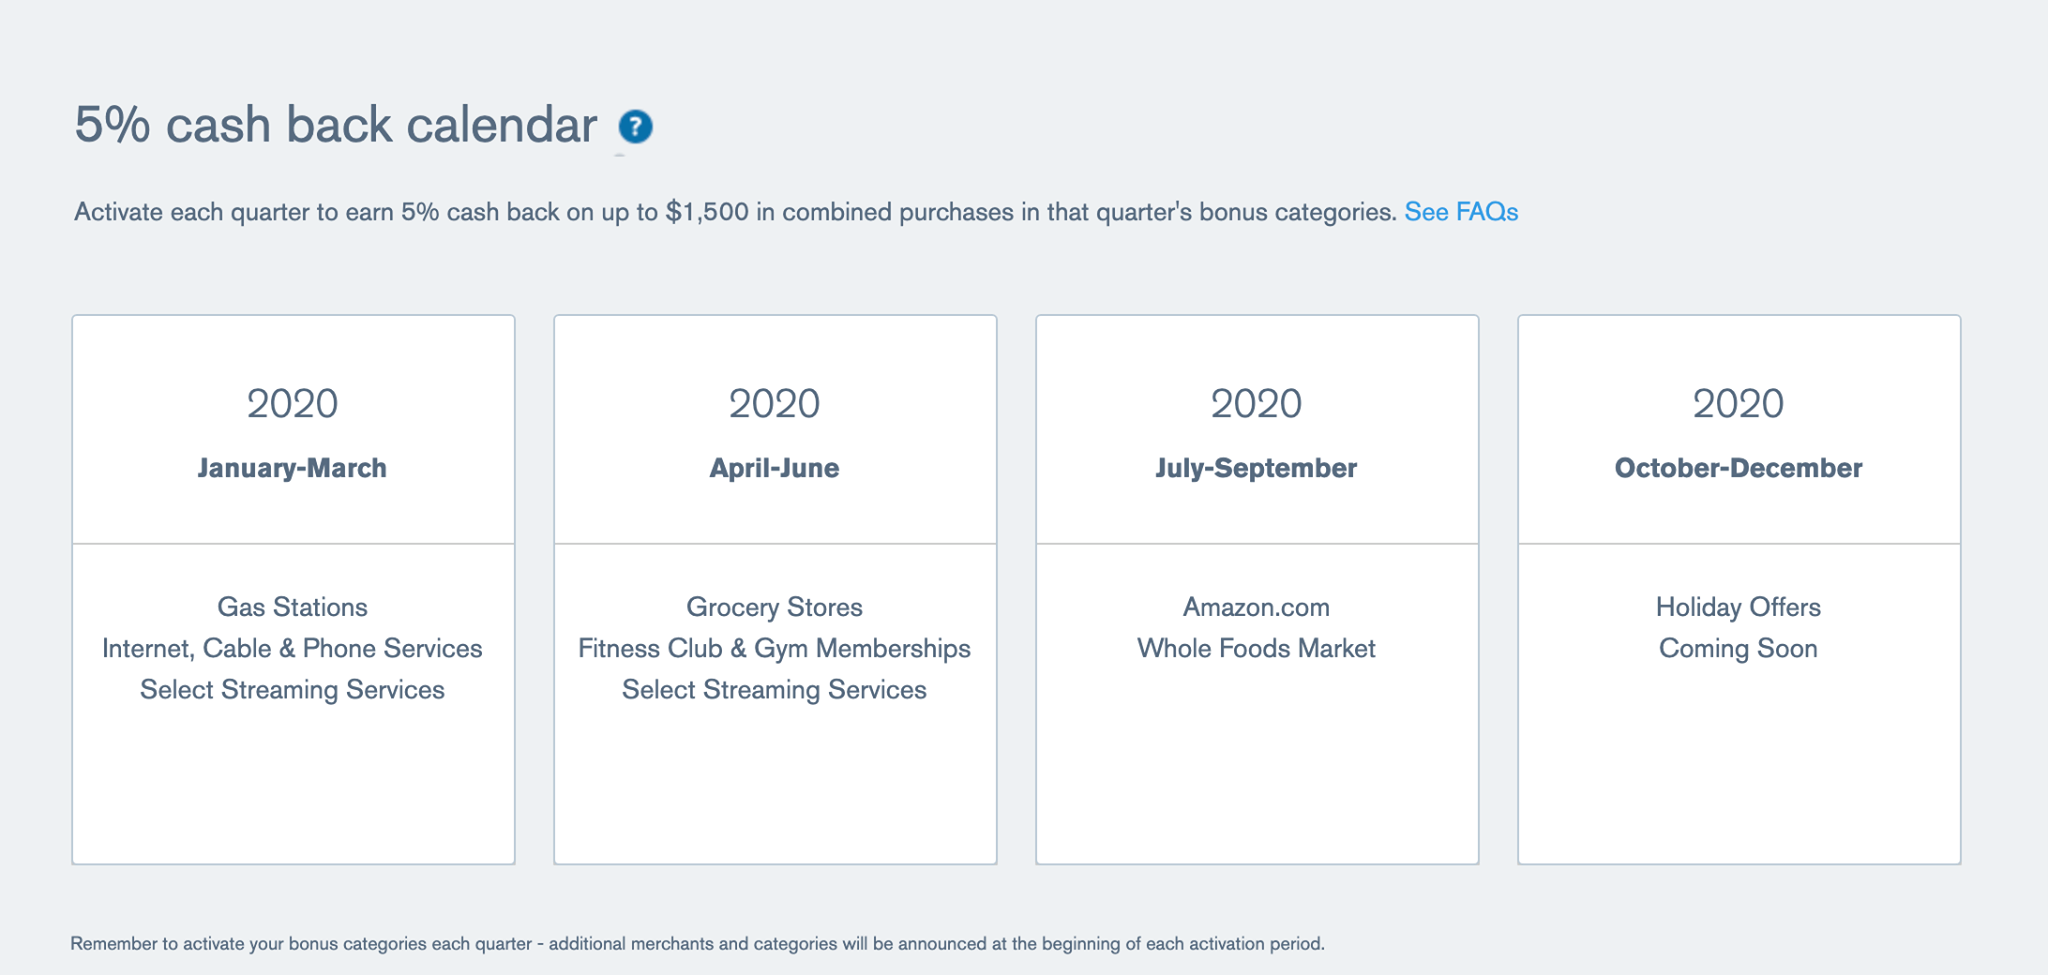 Chase Freedom Calendar 2022.Chase Freedom Q3 2020 Bonus Categories Just Released The Credit Shifu